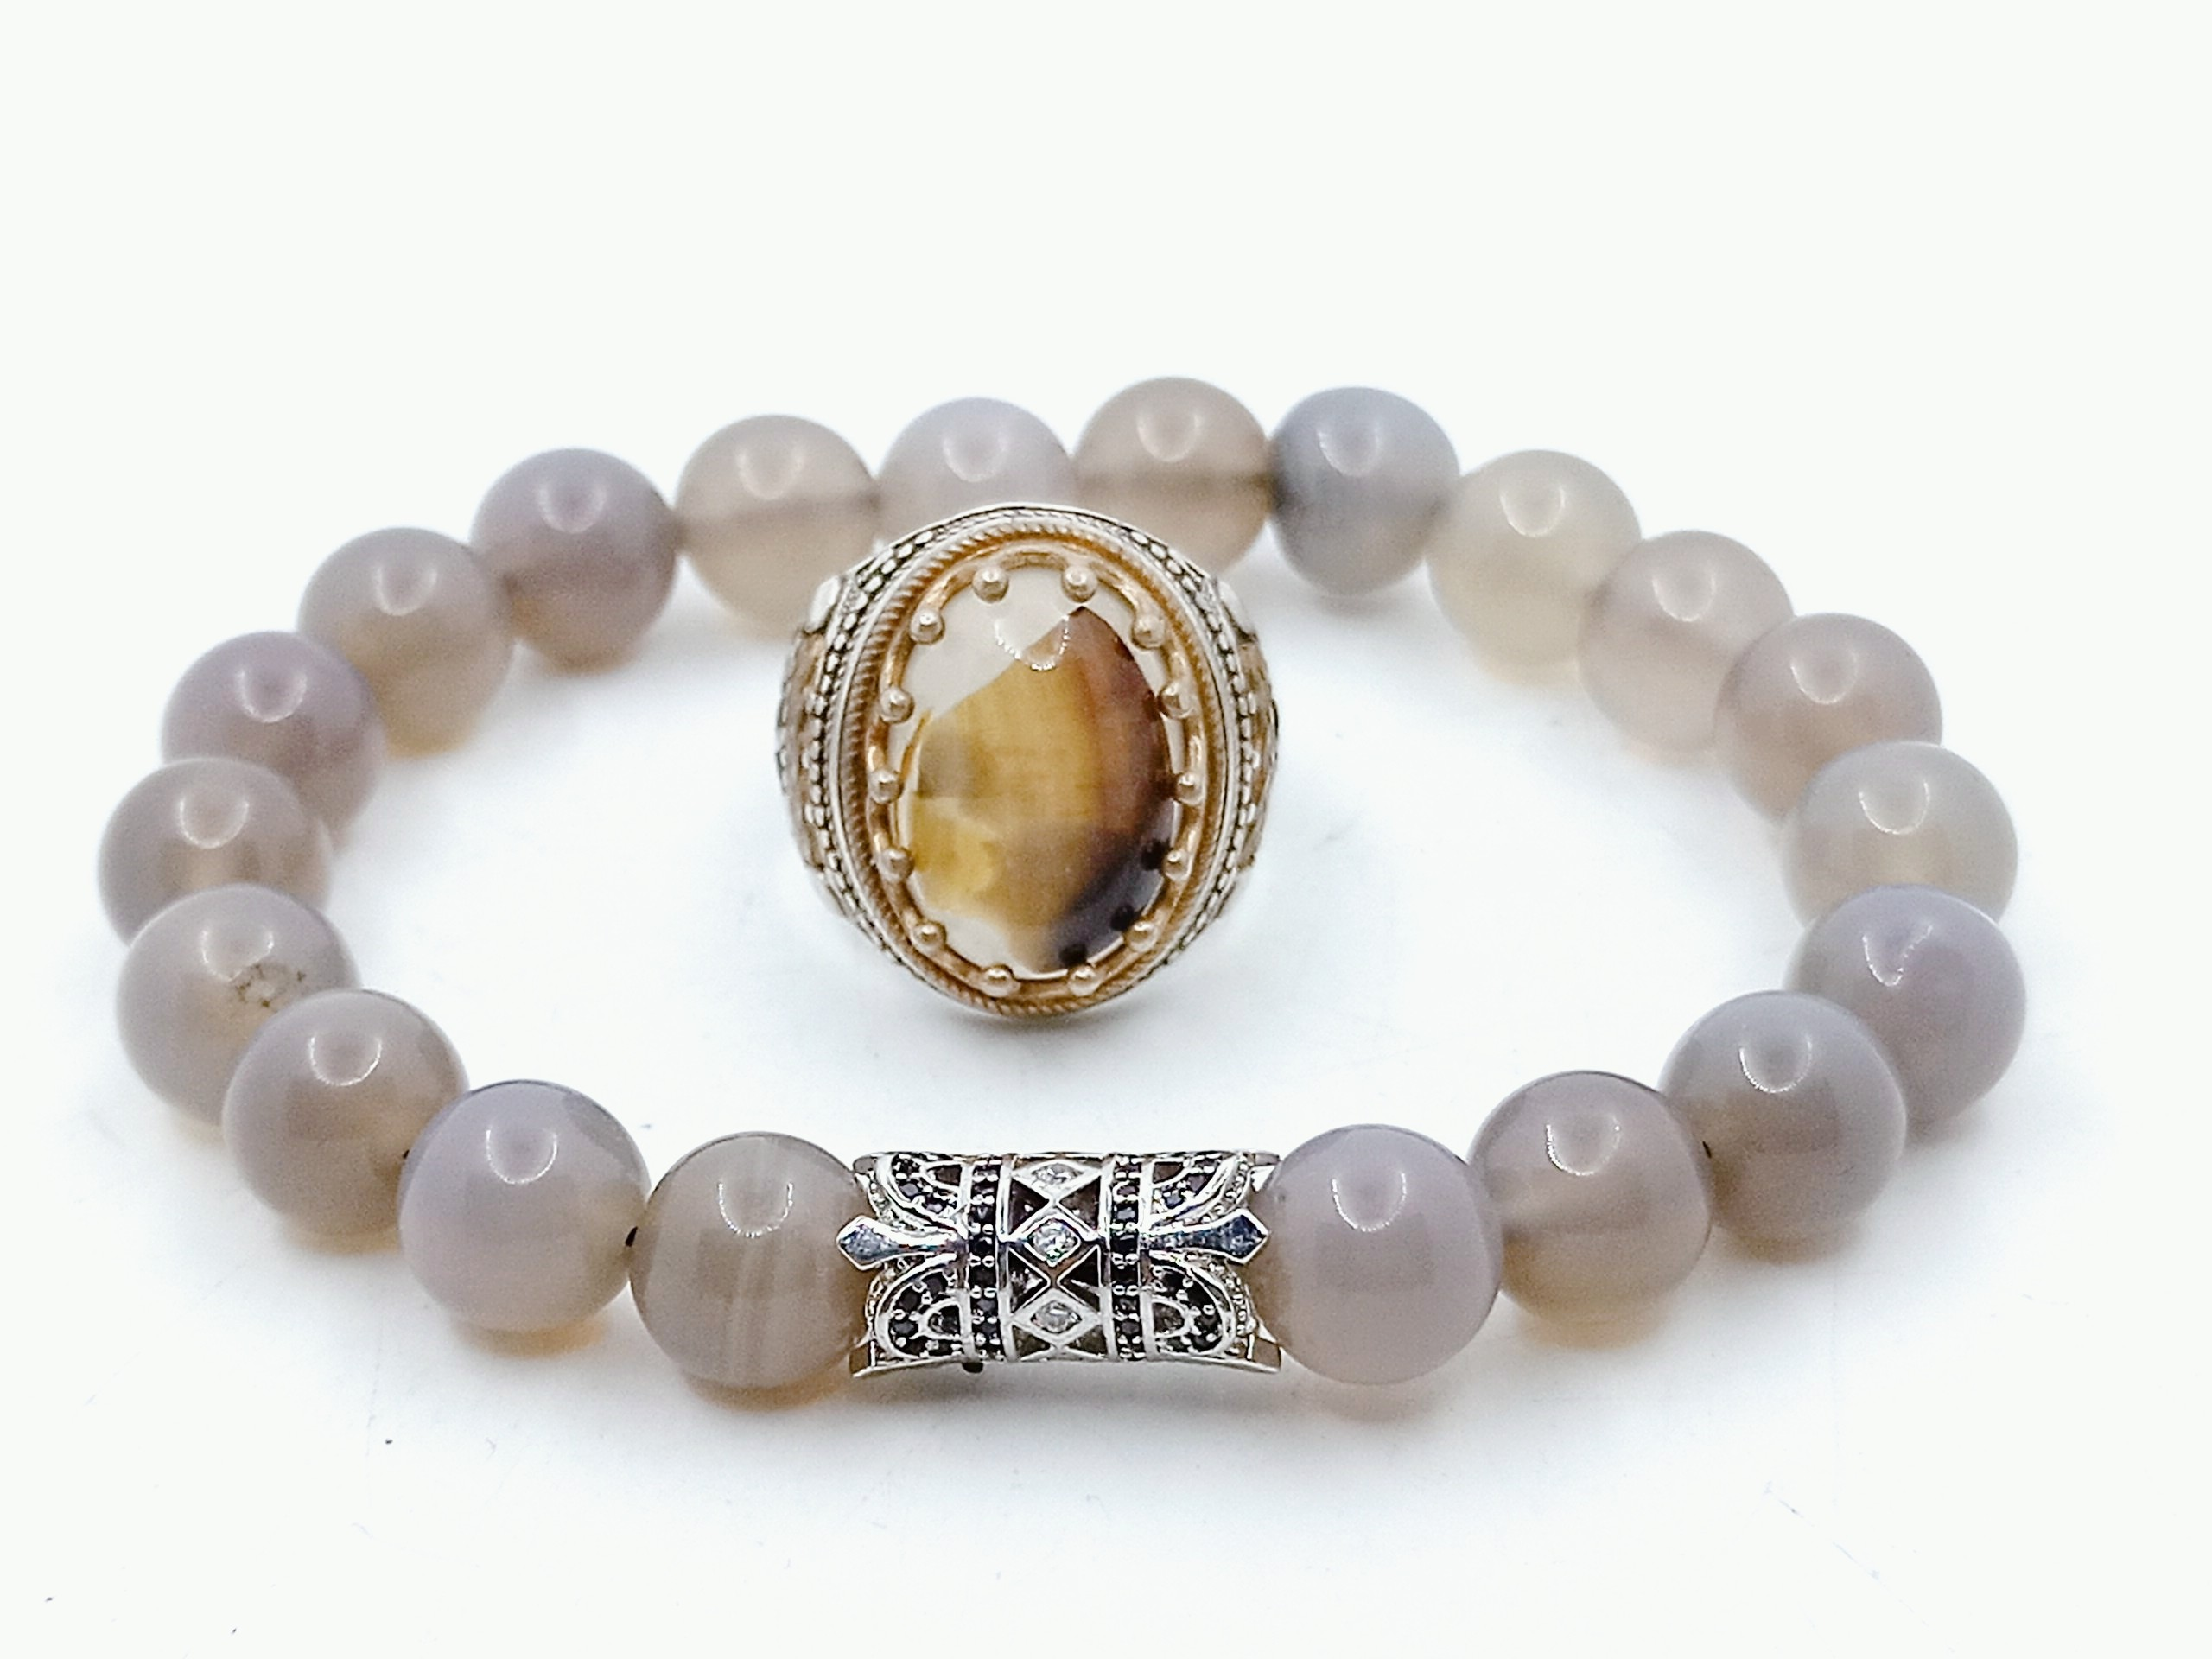 Ring with a stone agate and a bracelet of gray agate